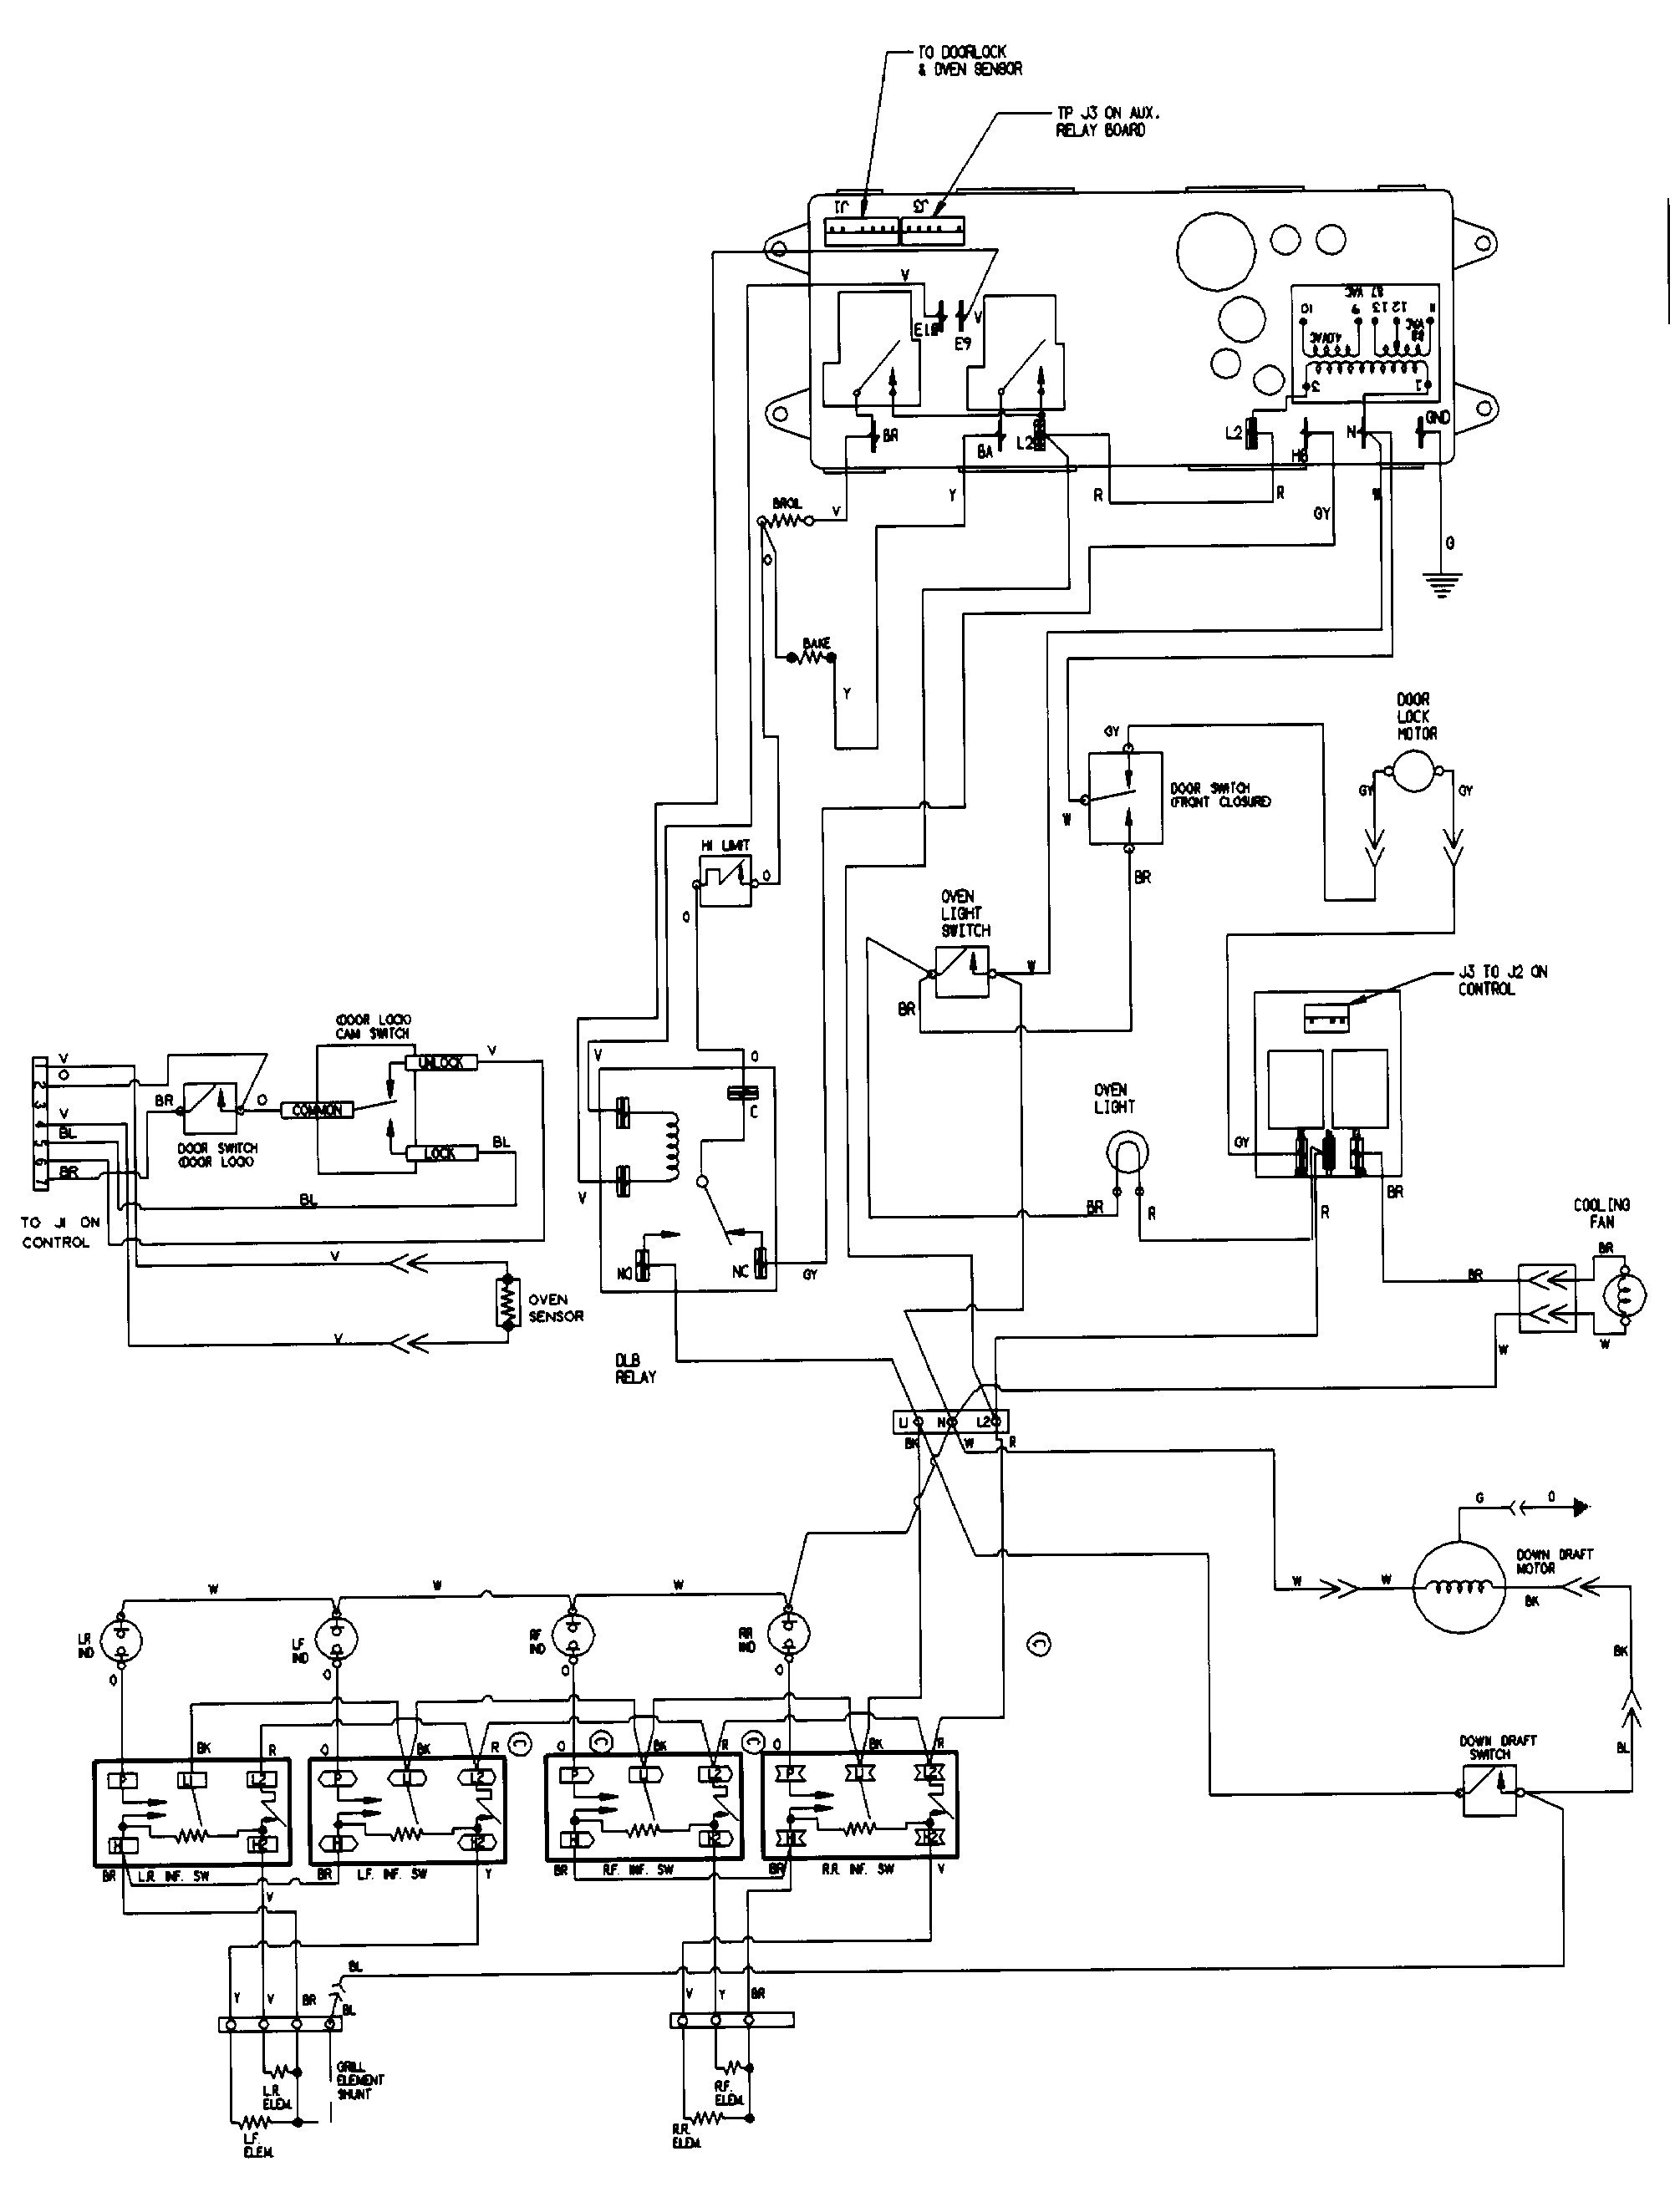 Rule Automatic Bilge Pump Wiring Diagram